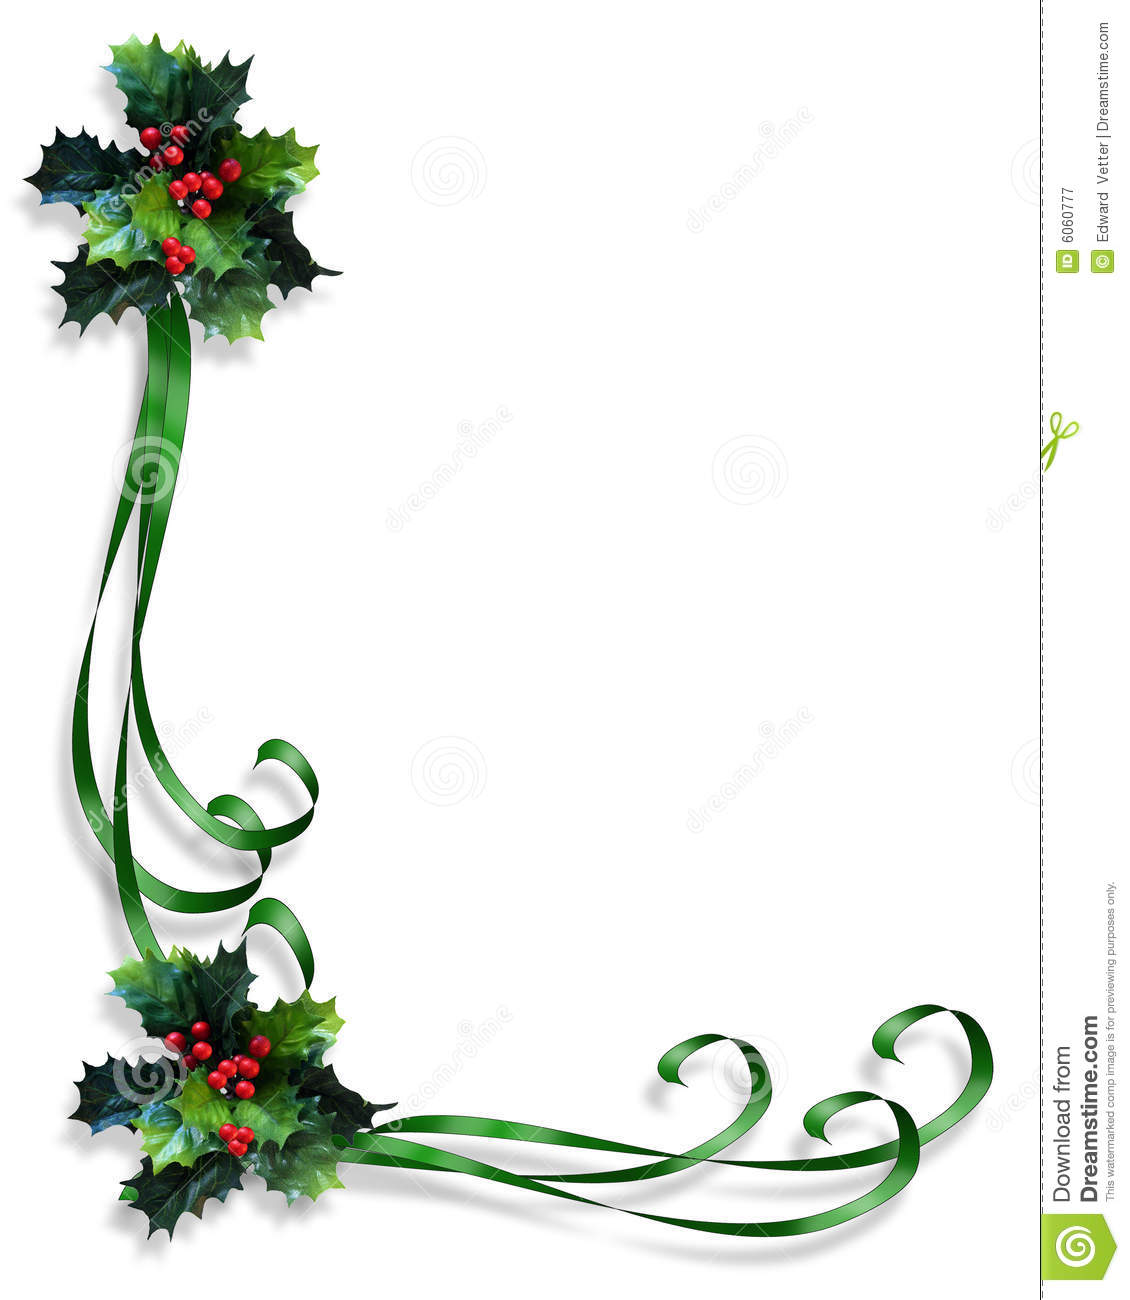 Holly Border Clipart Free & Holly Border Clip Art Images.